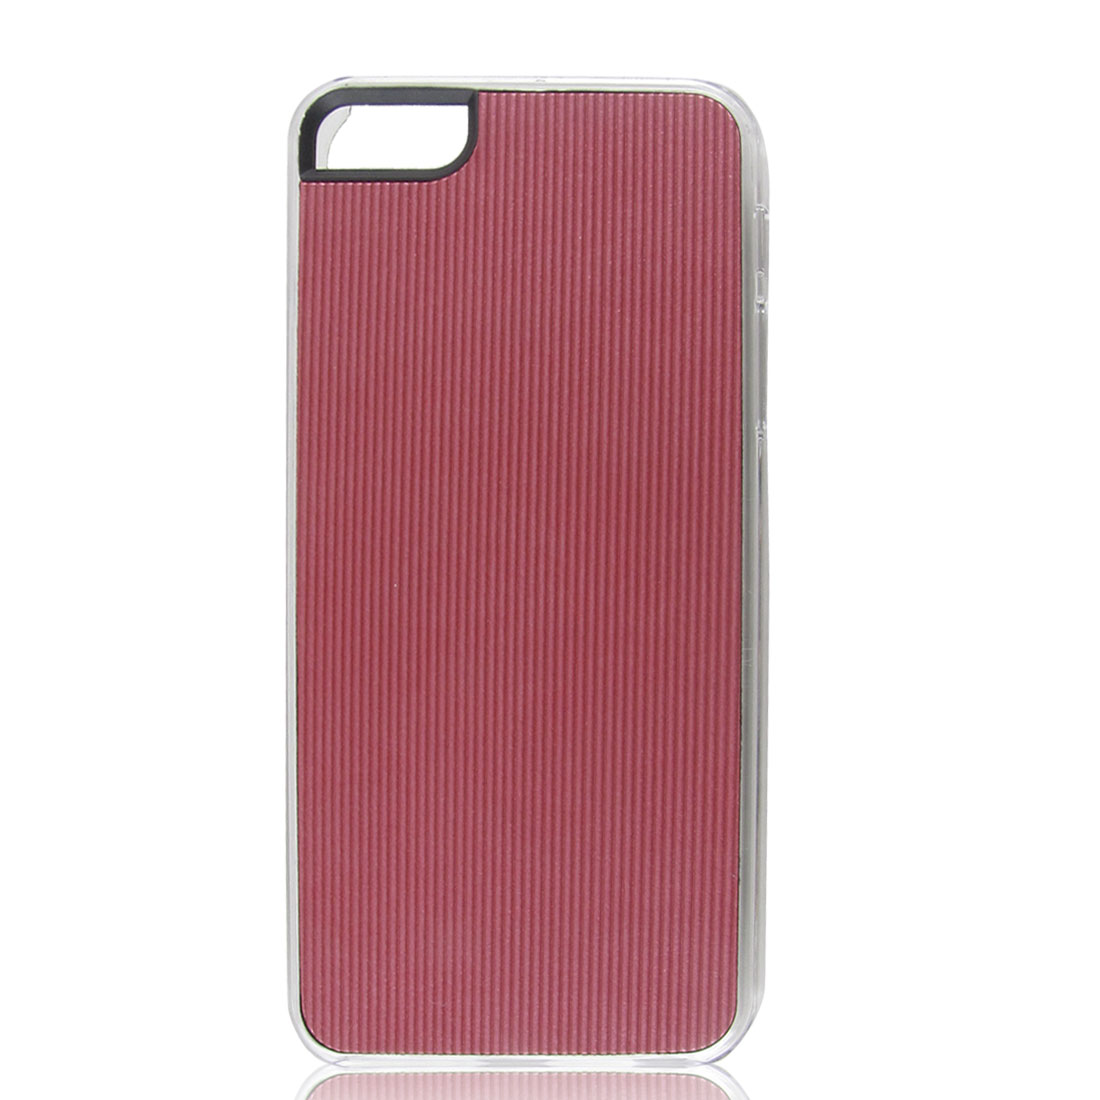 Burgundy Faux Leather Coated Pinstripe Hard Back Case Cover for iPhone 5 5G 5th